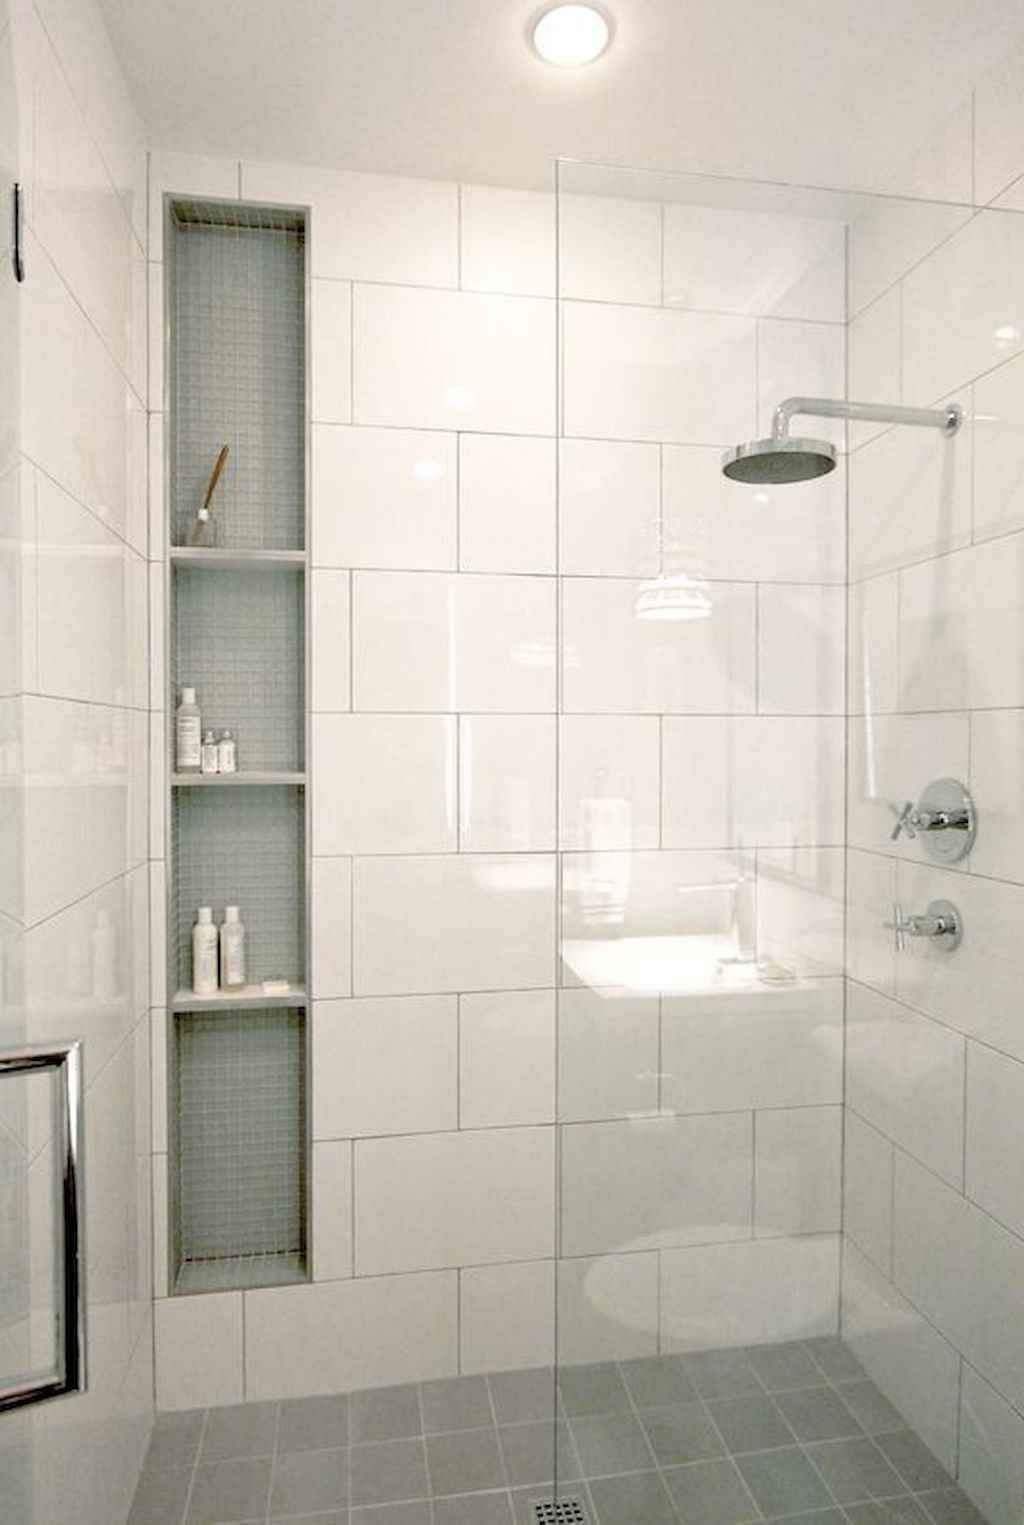 Cool Small Master Bathroom Remodel Ideas On A Budget 23 Homespecially Bathroom Remodel Shower Bathroom Tile Designs Small Bathroom With Shower